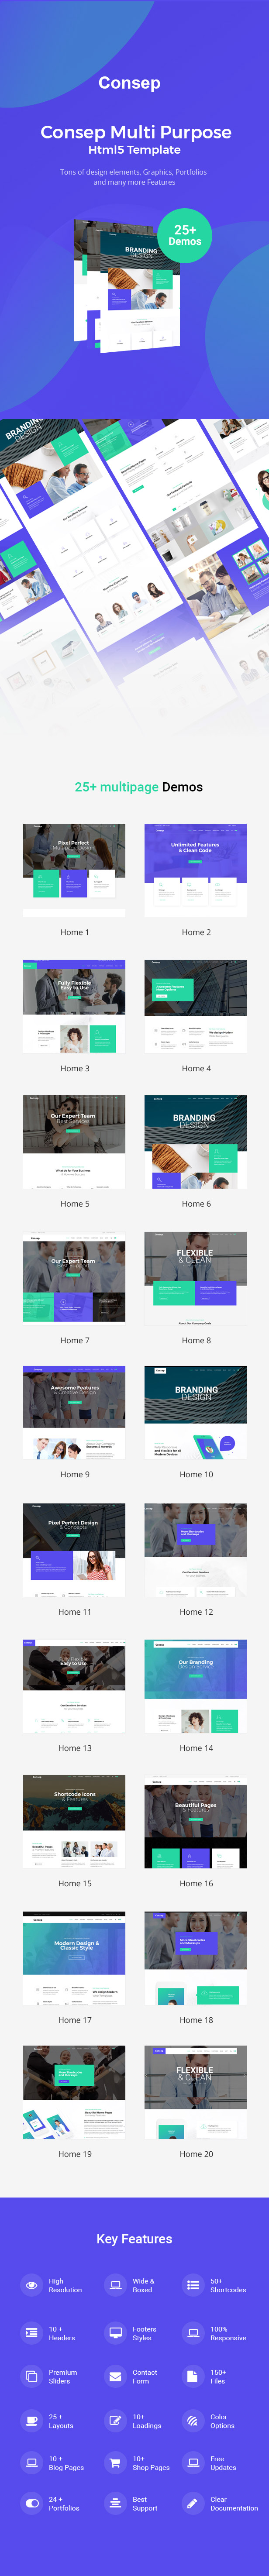 consep responsive multi purpose html5 template by codelayers